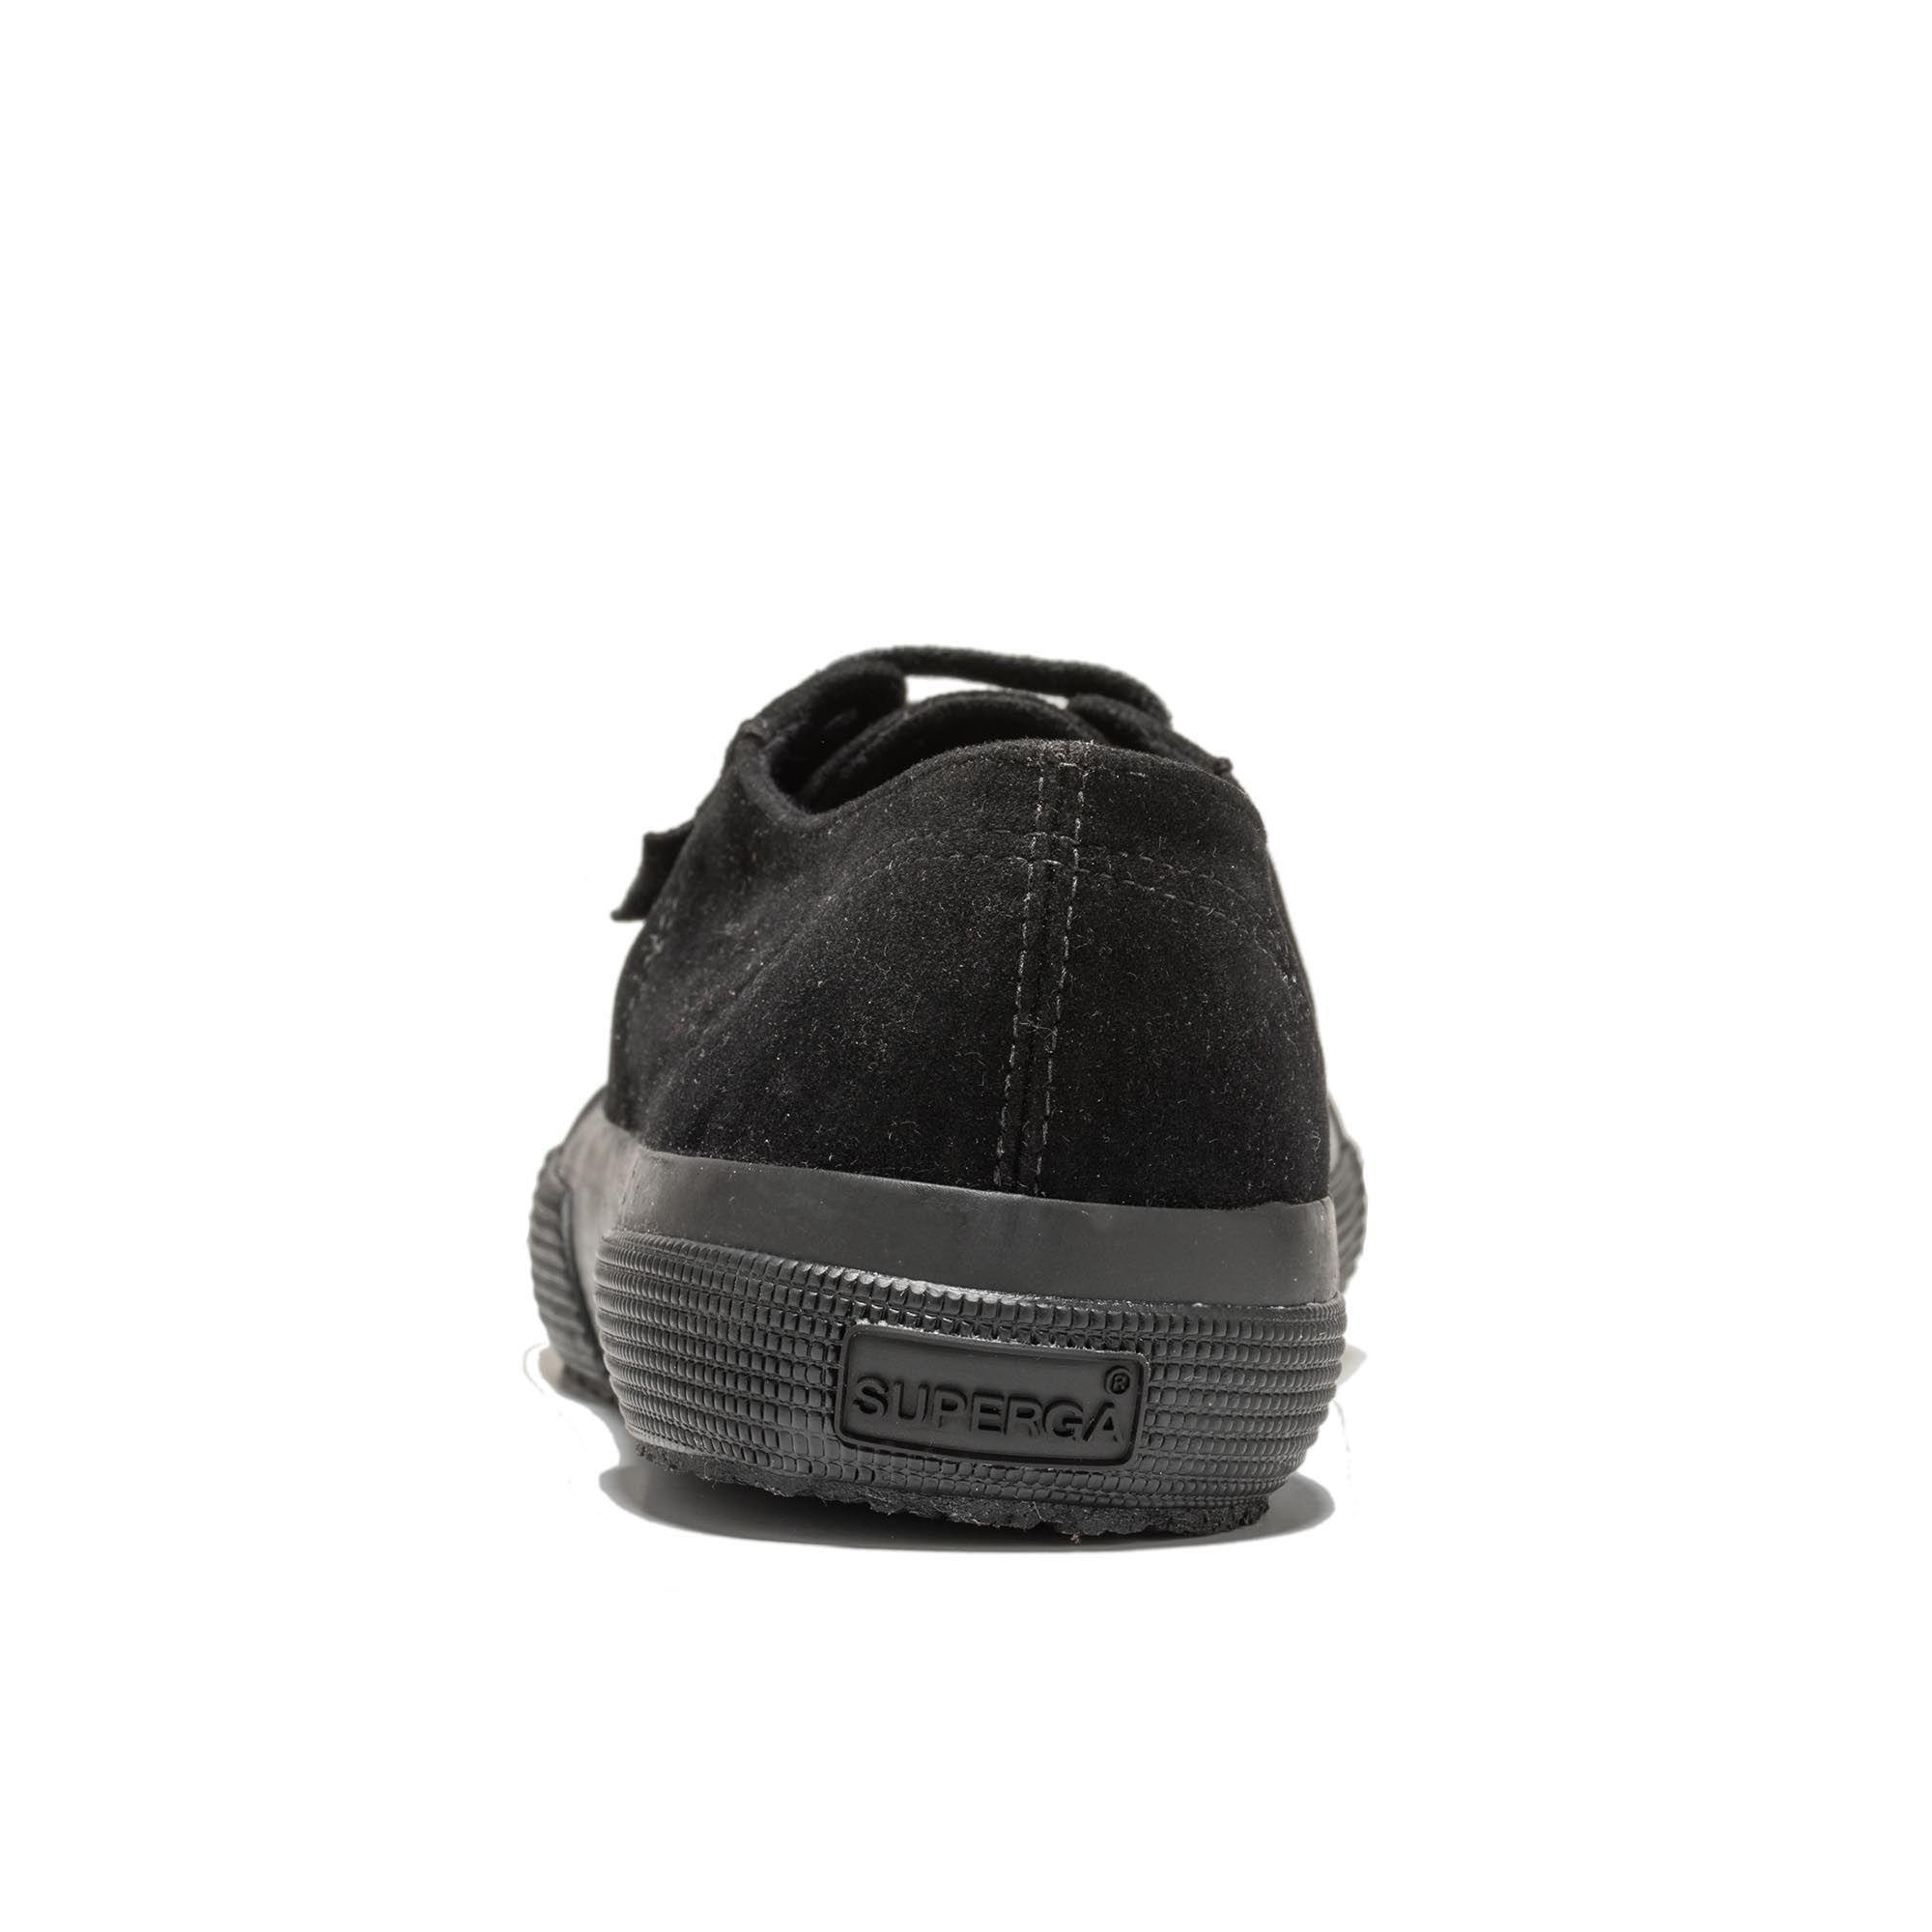 2750 SUMMER SUEDE BLACK